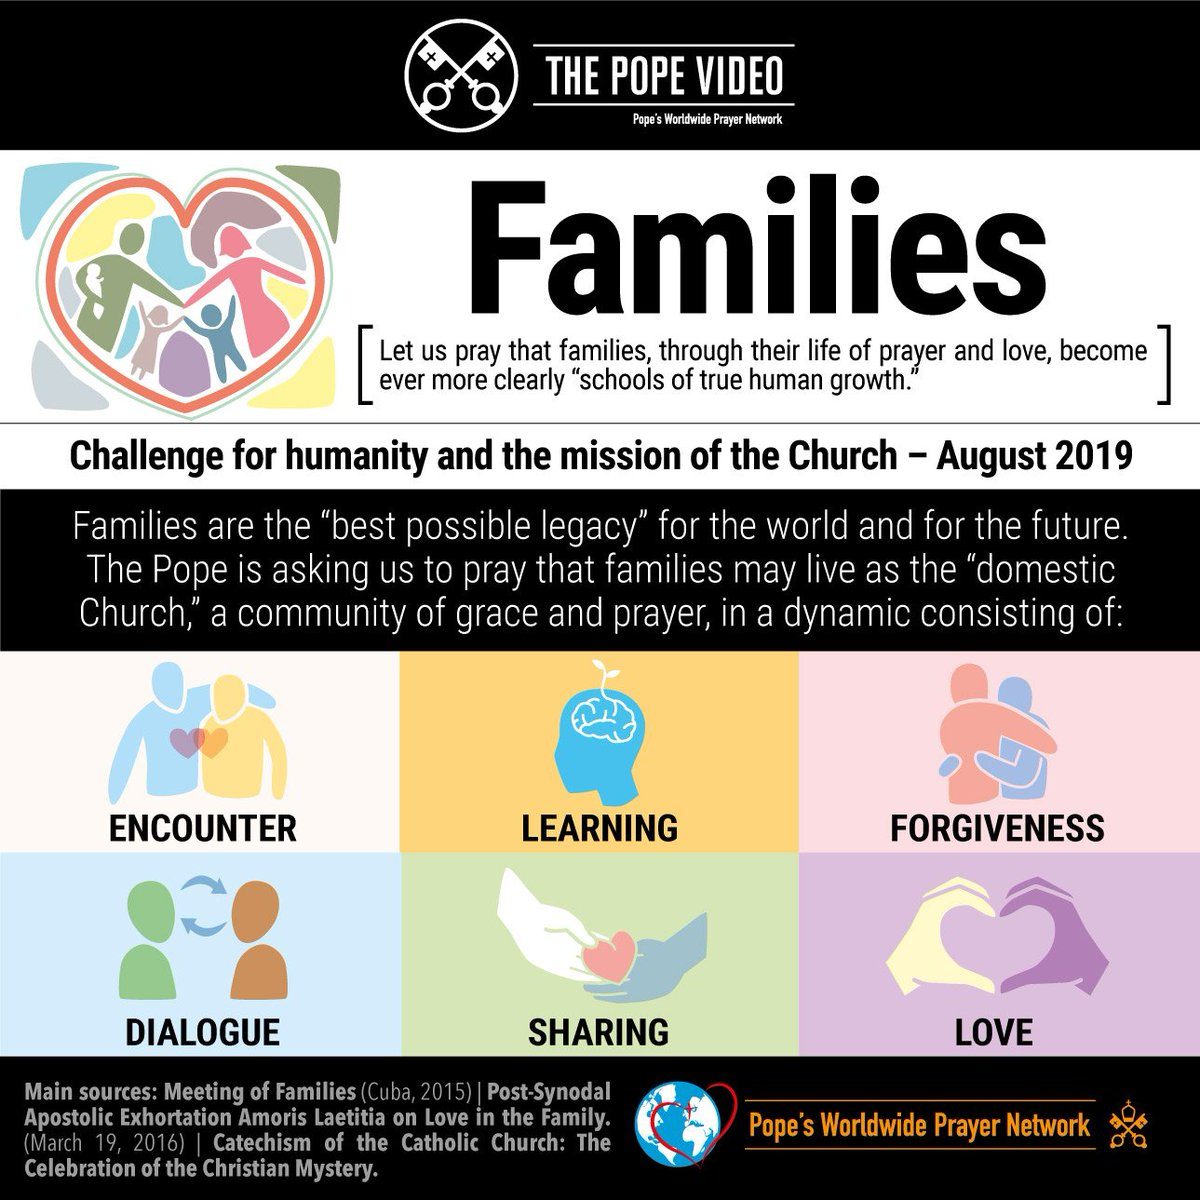 """Pope Francis invites us to pray that families, through their life of prayer and love, may become ever more clearly """"schools of true human growth."""" Join him in prayer. #Families #ThePopeVideo"""